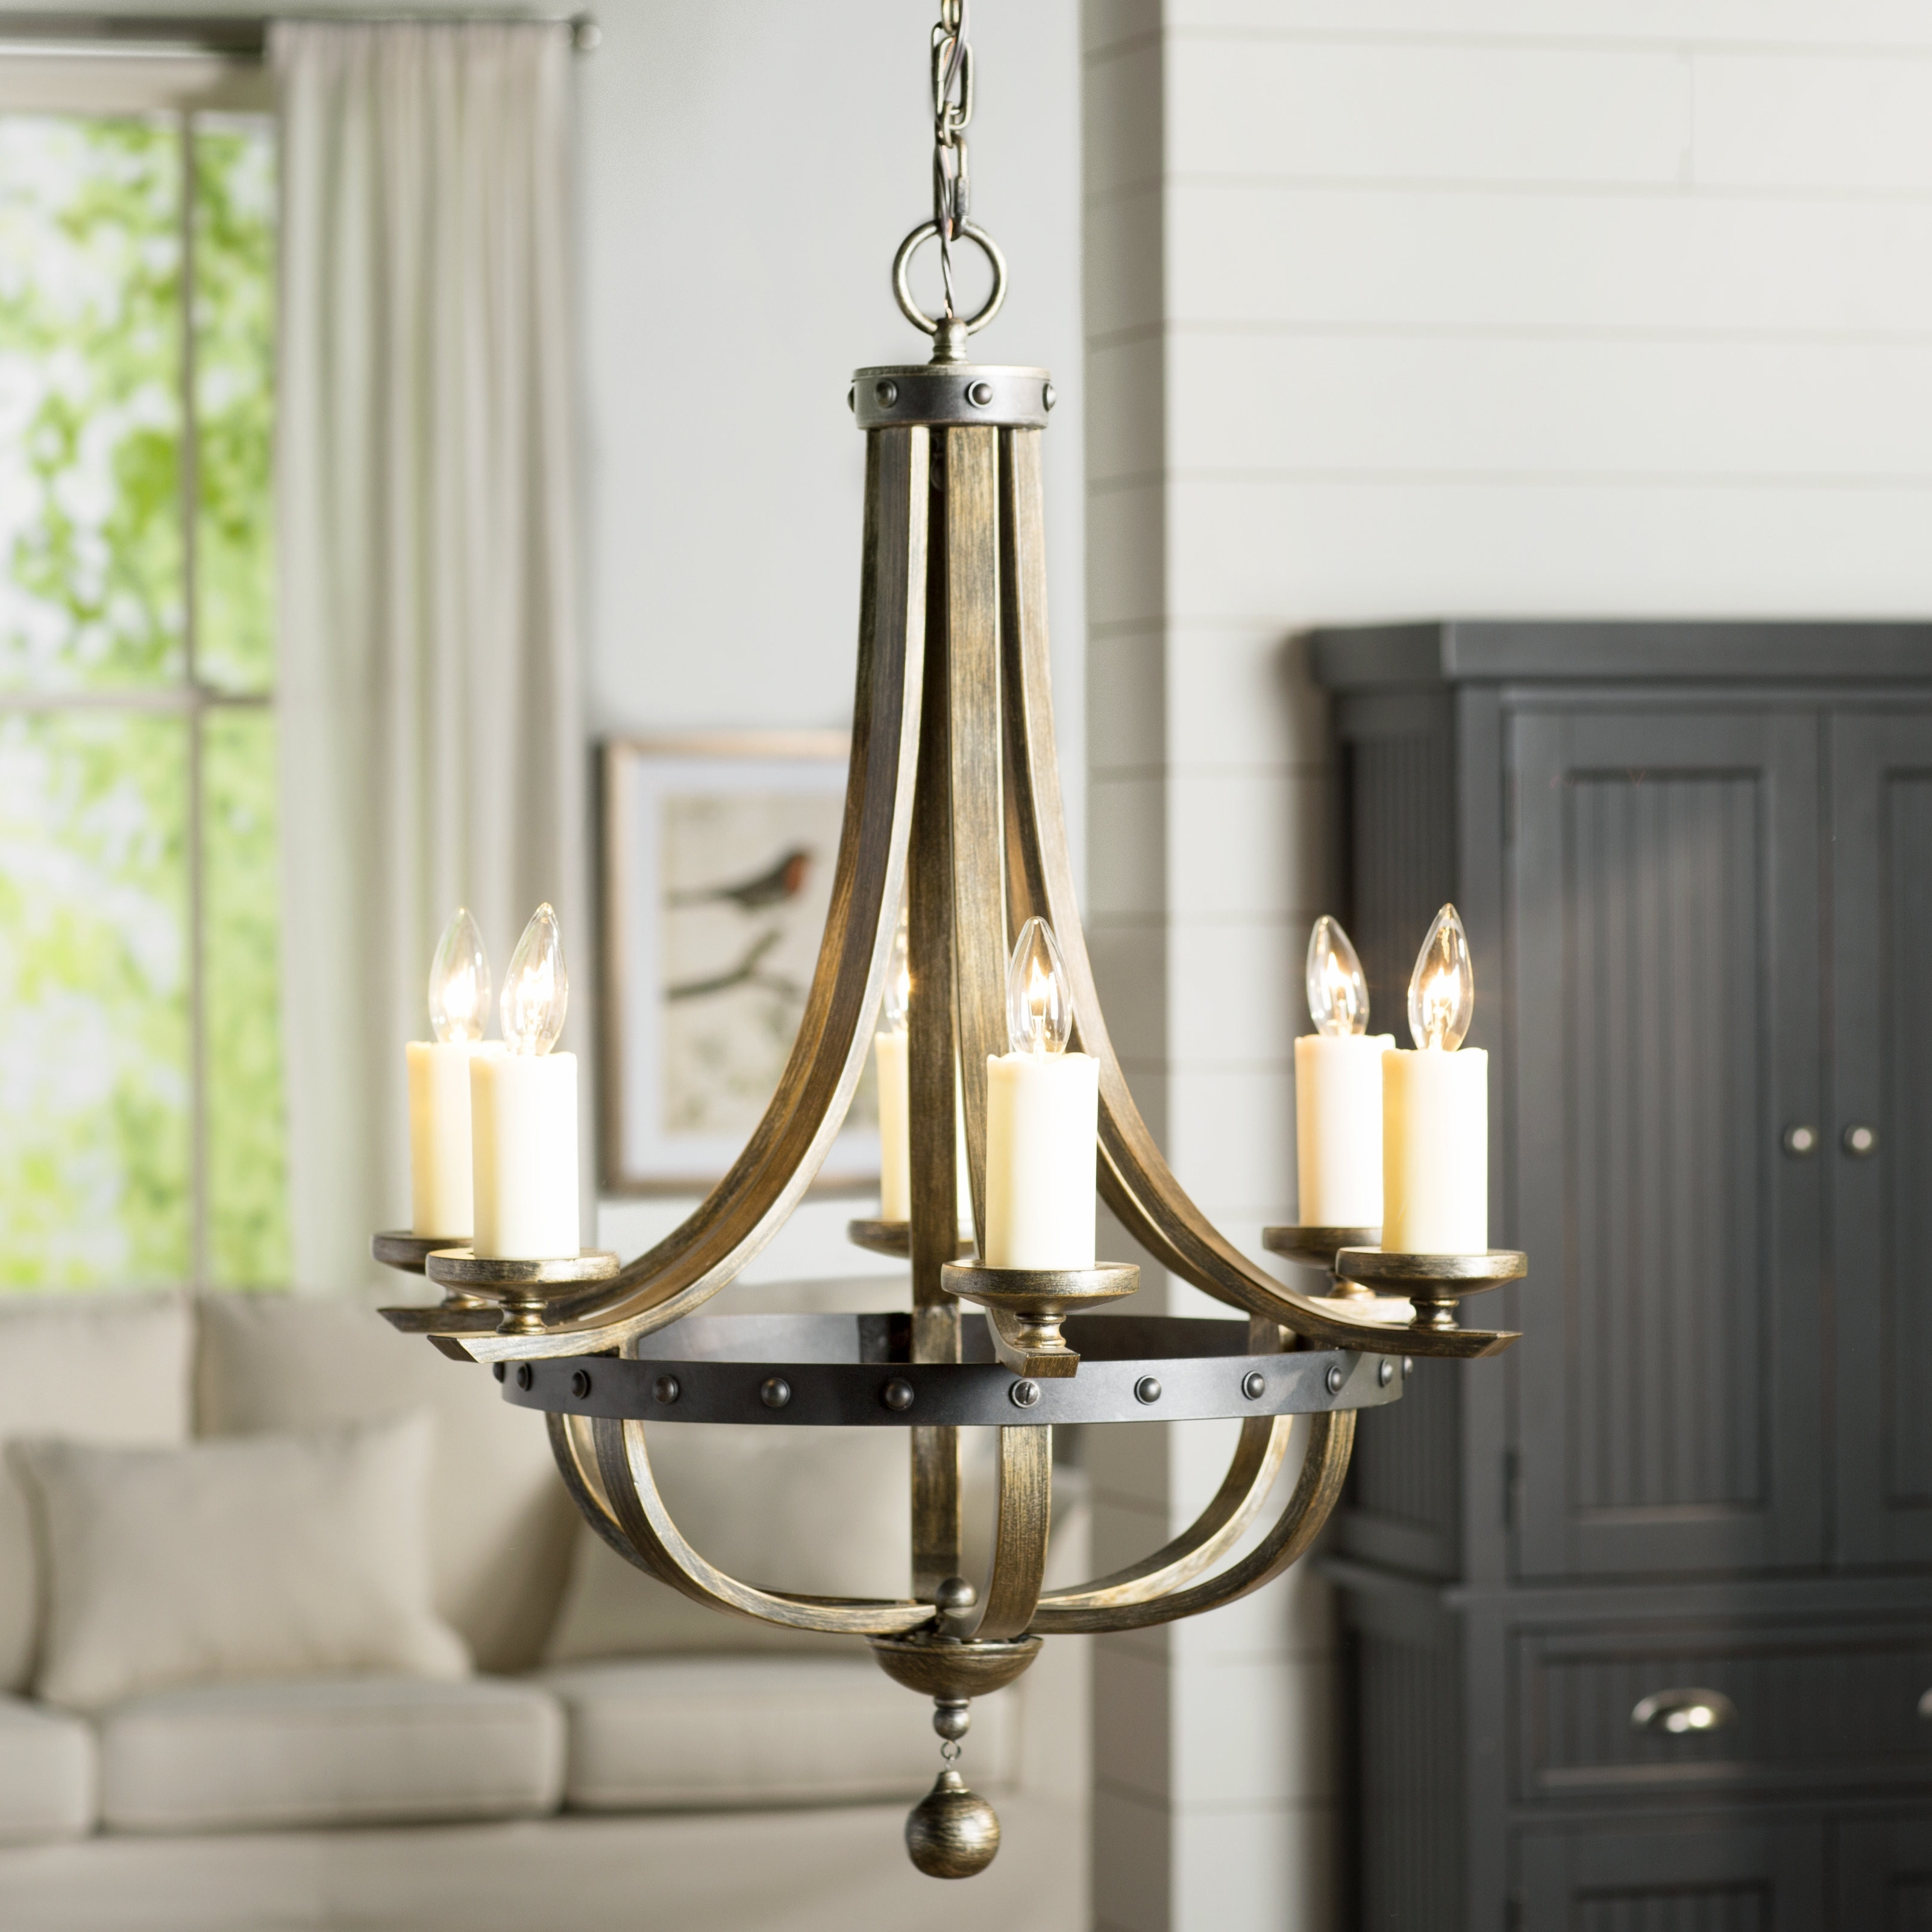 Most Popular Chandeliers : Hanging Candle Chandelier Luxury Wood Chandeliers You Inside Hanging Candle Chandeliers (View 13 of 15)